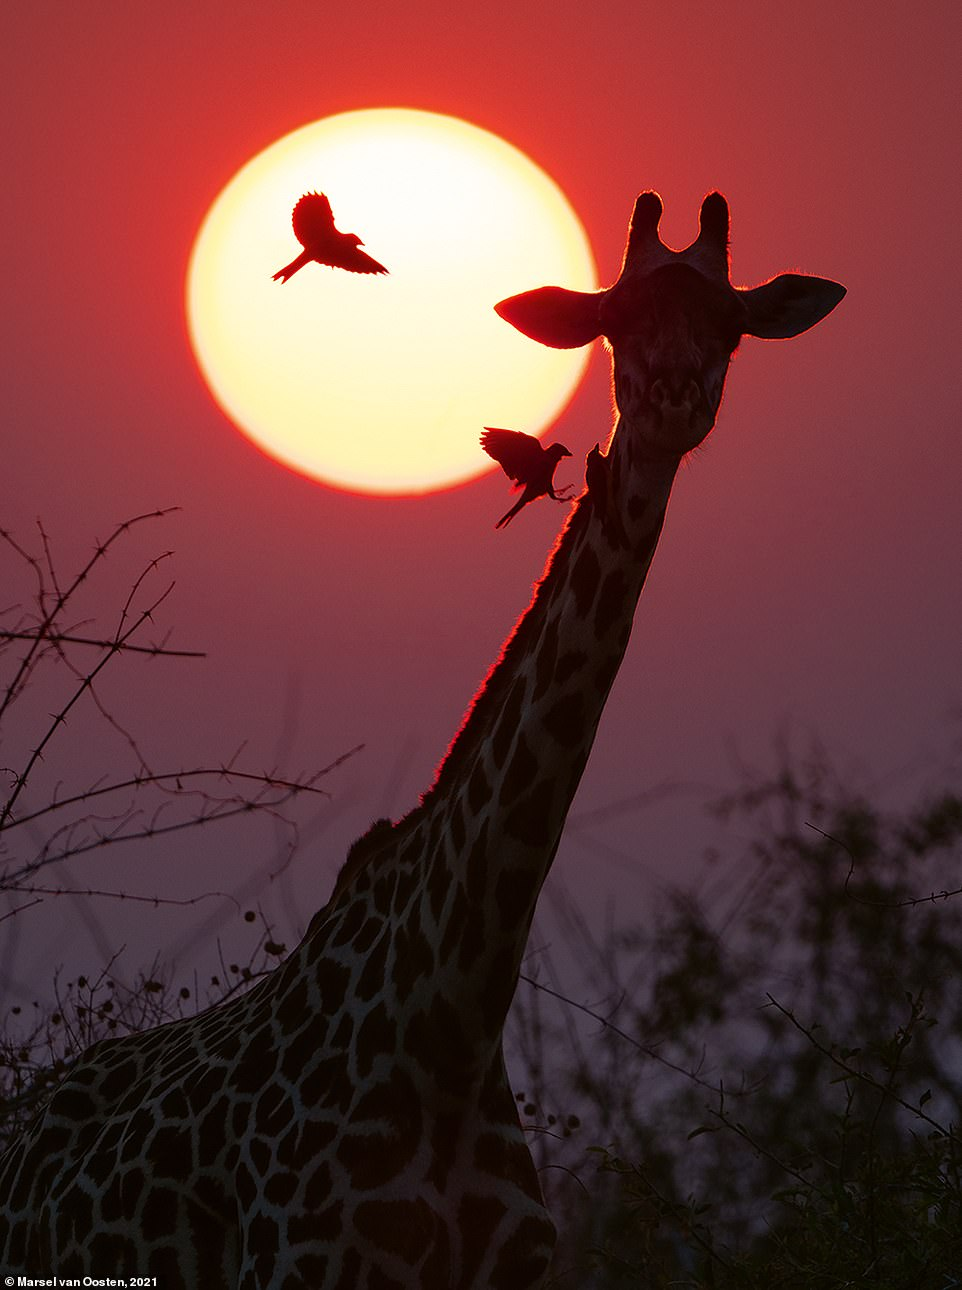 In the book, Marsel explains how he shot this incredible image on a windy morning in Botswana. He explains: 'There was a lot of dust in the air, which can create very colourful sunrises and sunsets. This giraffe was annoyed by the red-billed oxpeckers that were harassing it. Every now and then it would violently shake its head, which made the birds fly off, only to return a few seconds later'